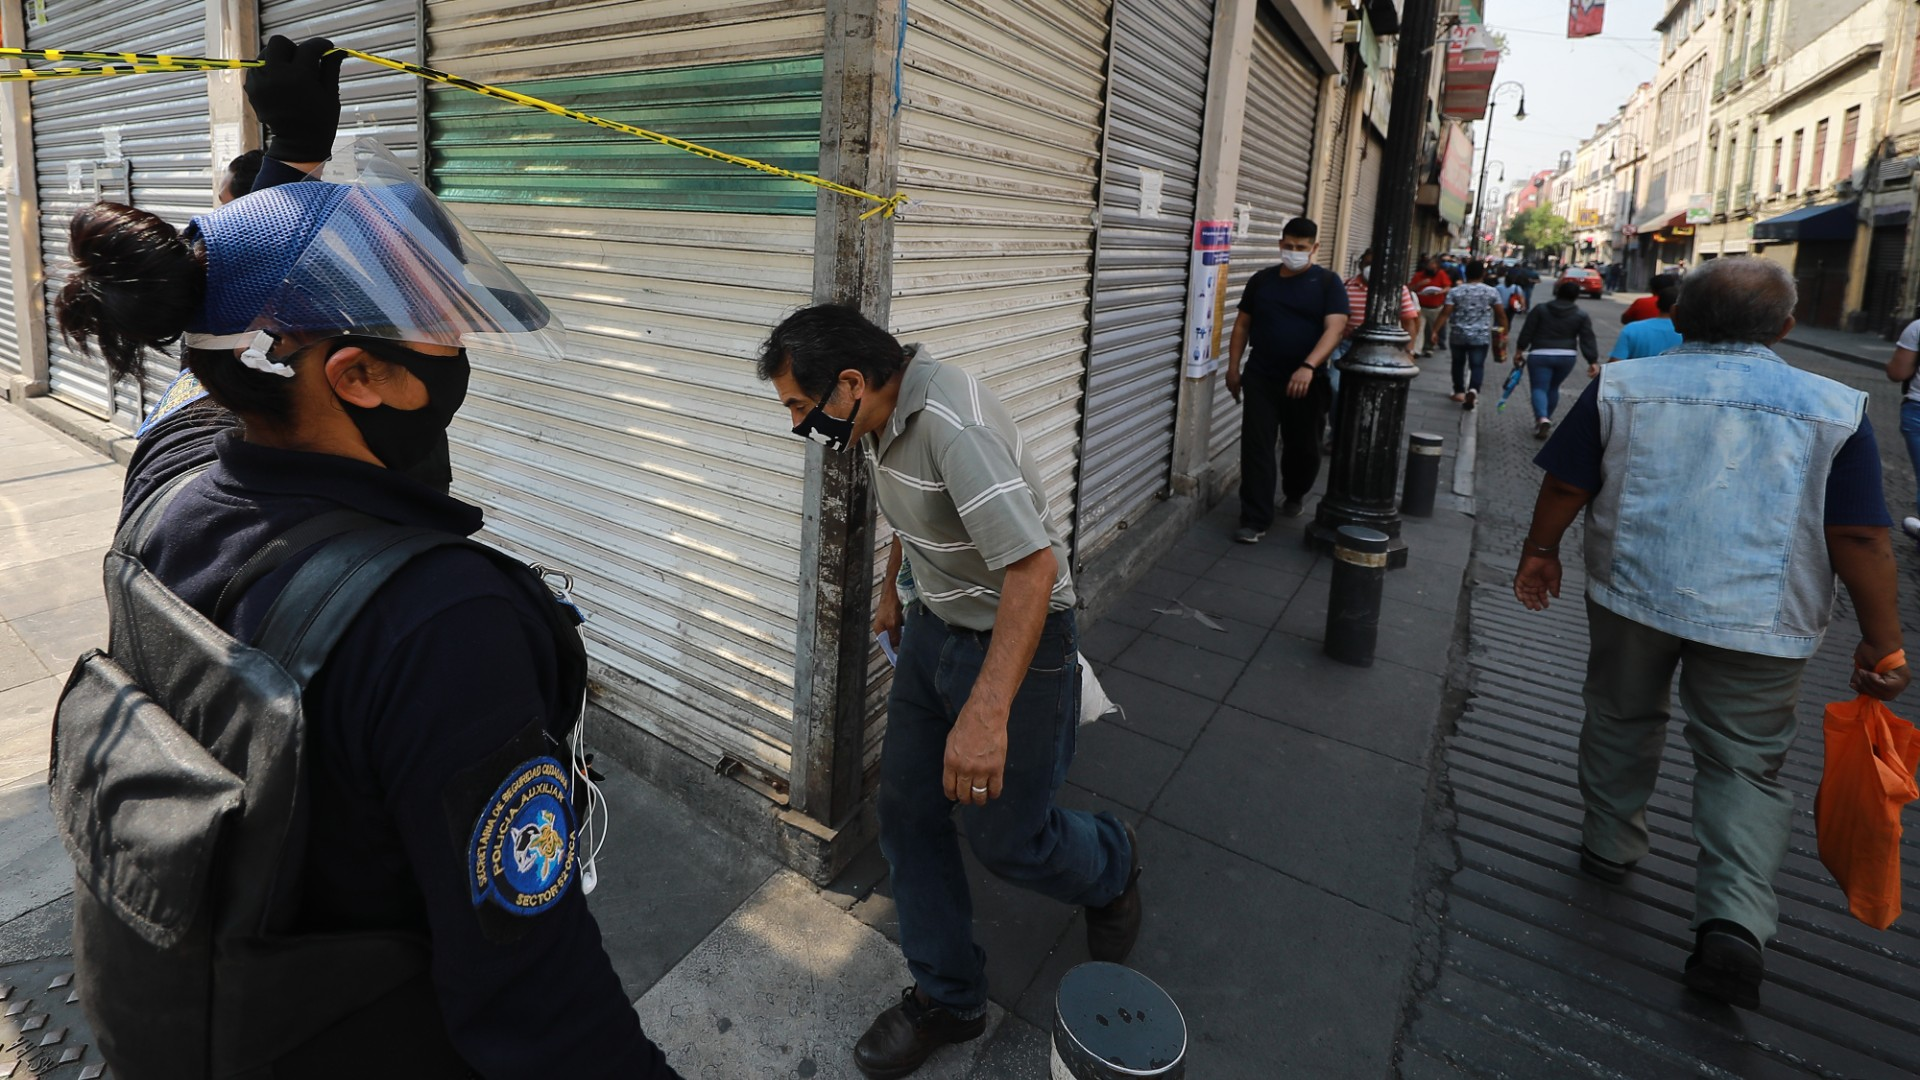 Police control the passage of people to Corregidora street where there are shops for construction products during health emergency to curb spread of COVID-19 on May 20, 2020 in Mexico City, Mexico. (Hector Vivas/Getty Images)